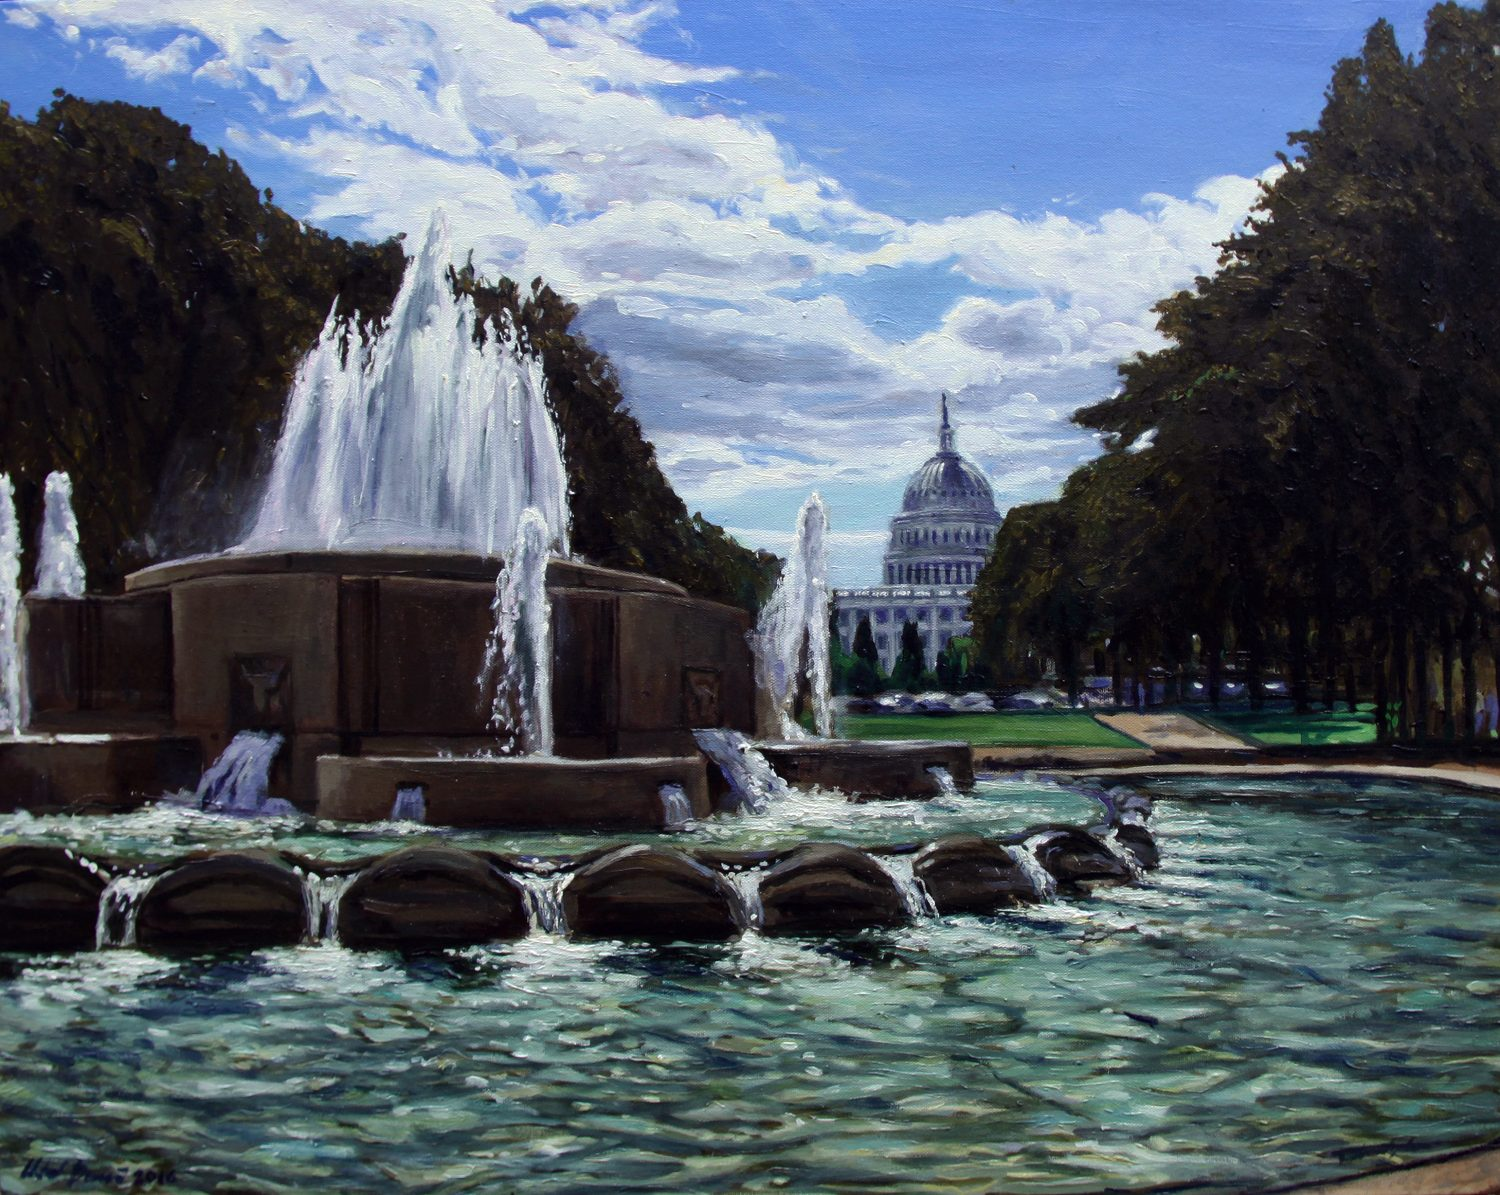 Senate Fountain